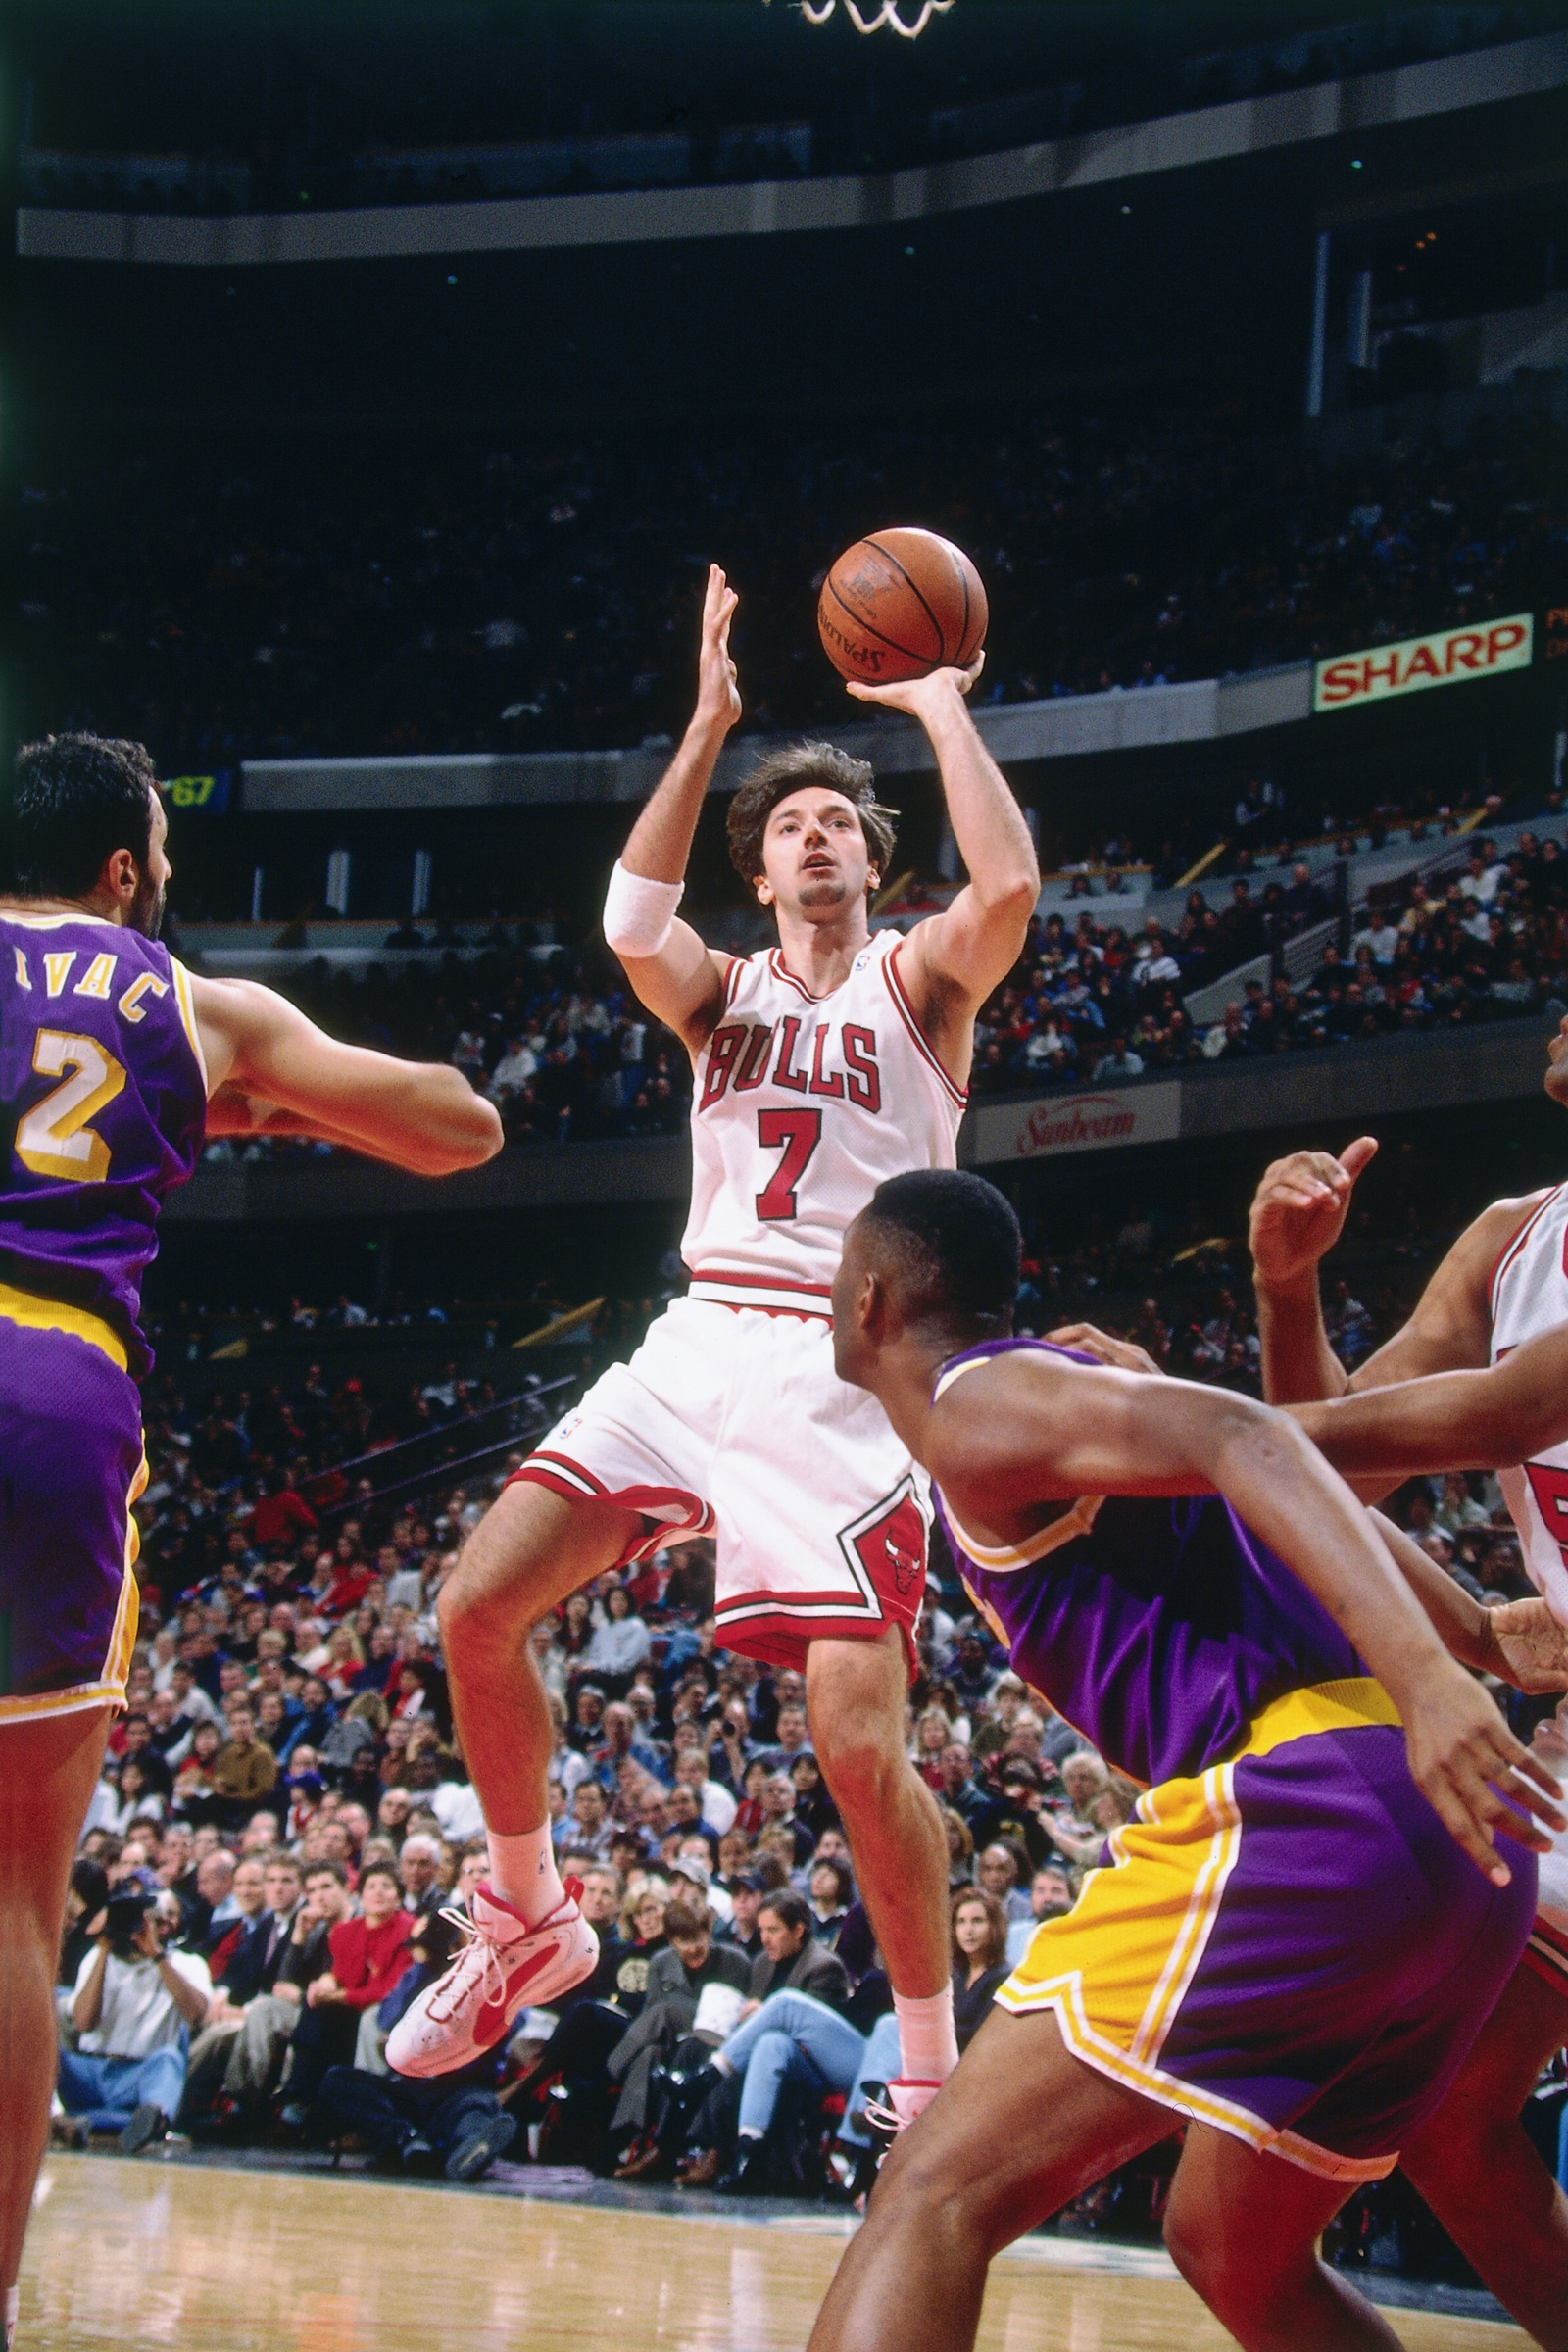 Kukoc and the Bulls play the Lakers